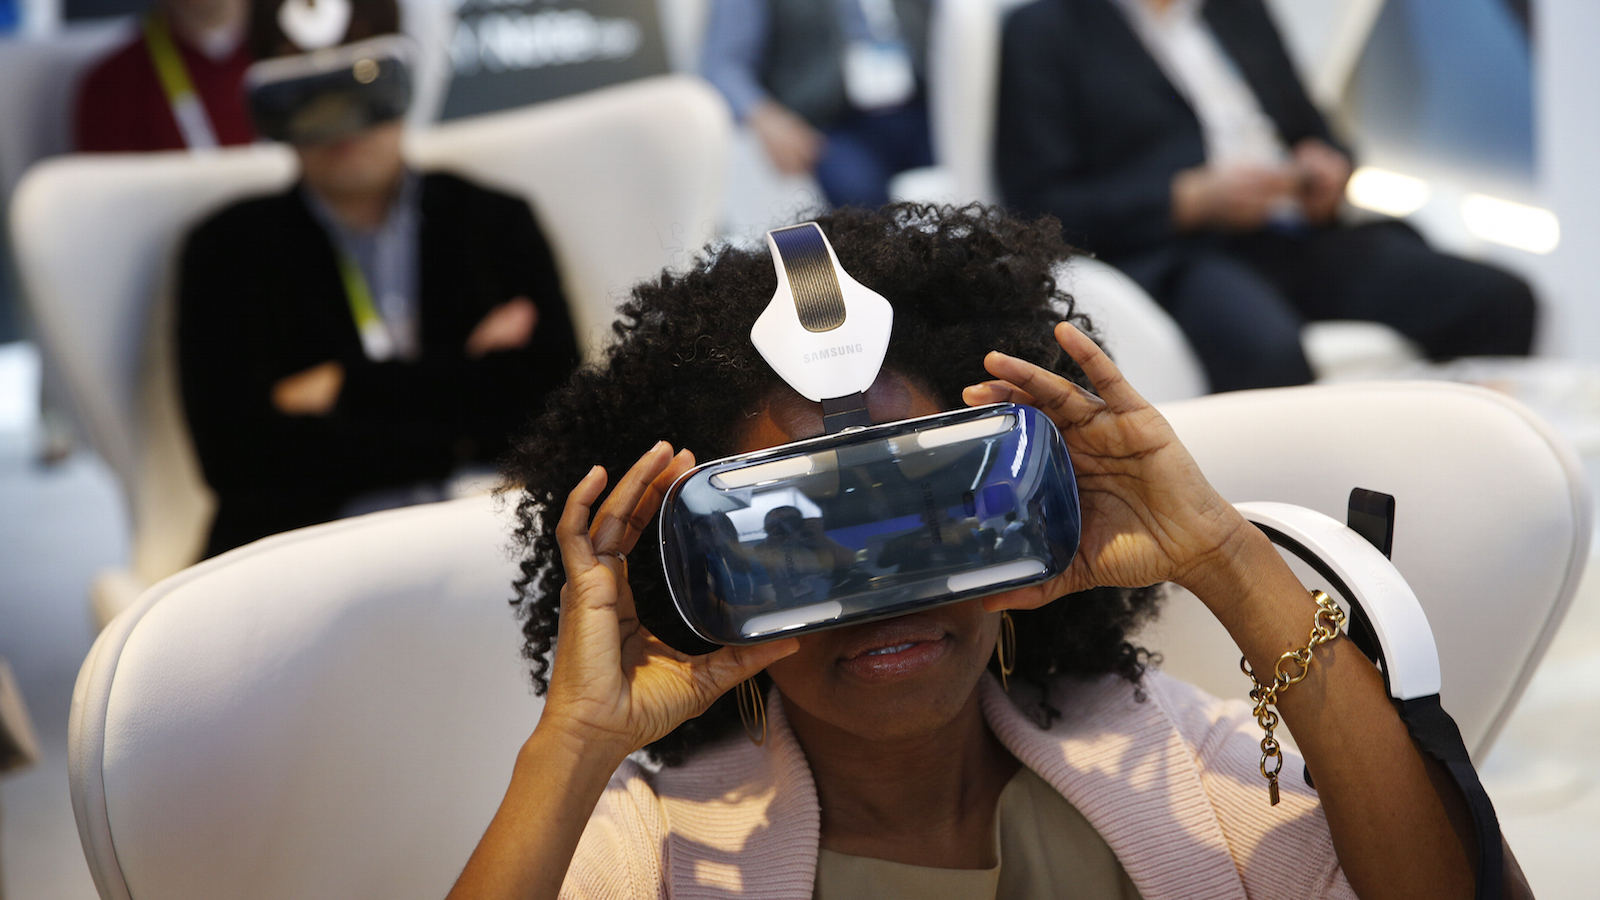 FILE - In this Jan. 6, 2015 file photo, Yasmin Moorman looks into the Galaxy Gear VR headset at the Samsung booth during the International CES, in Las Vegas.  While more than 1,500 attendees are expected on Saturday, Aug. 29, 2015, at the VRLA expo, the event probably won't feel very crowded. That's because headset-wearing convention goers will be transported to other worlds during the second-annual celebration of virtual reality at the Los Angeles Convention Center. (AP Photo/John Locher, File)